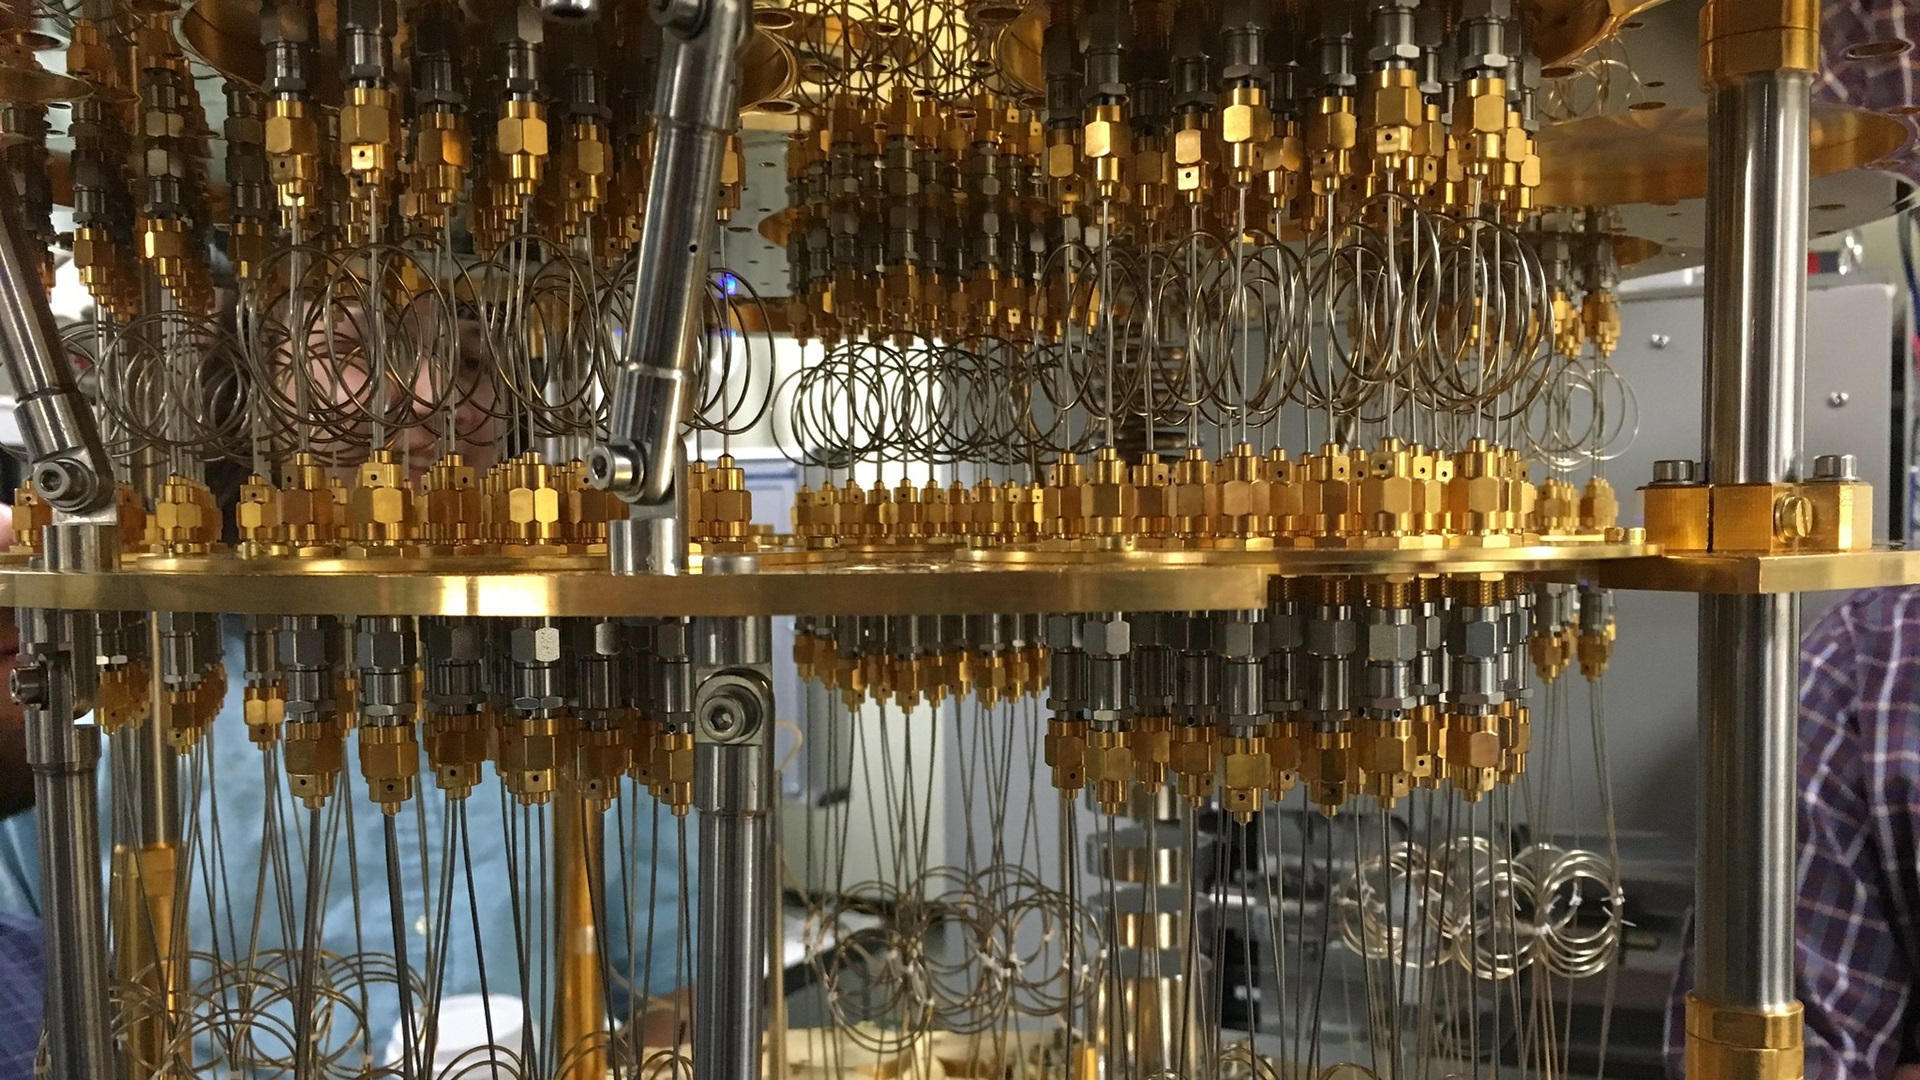 Wits is hosting a Quantum Computing Summer School this December - htxt.africa